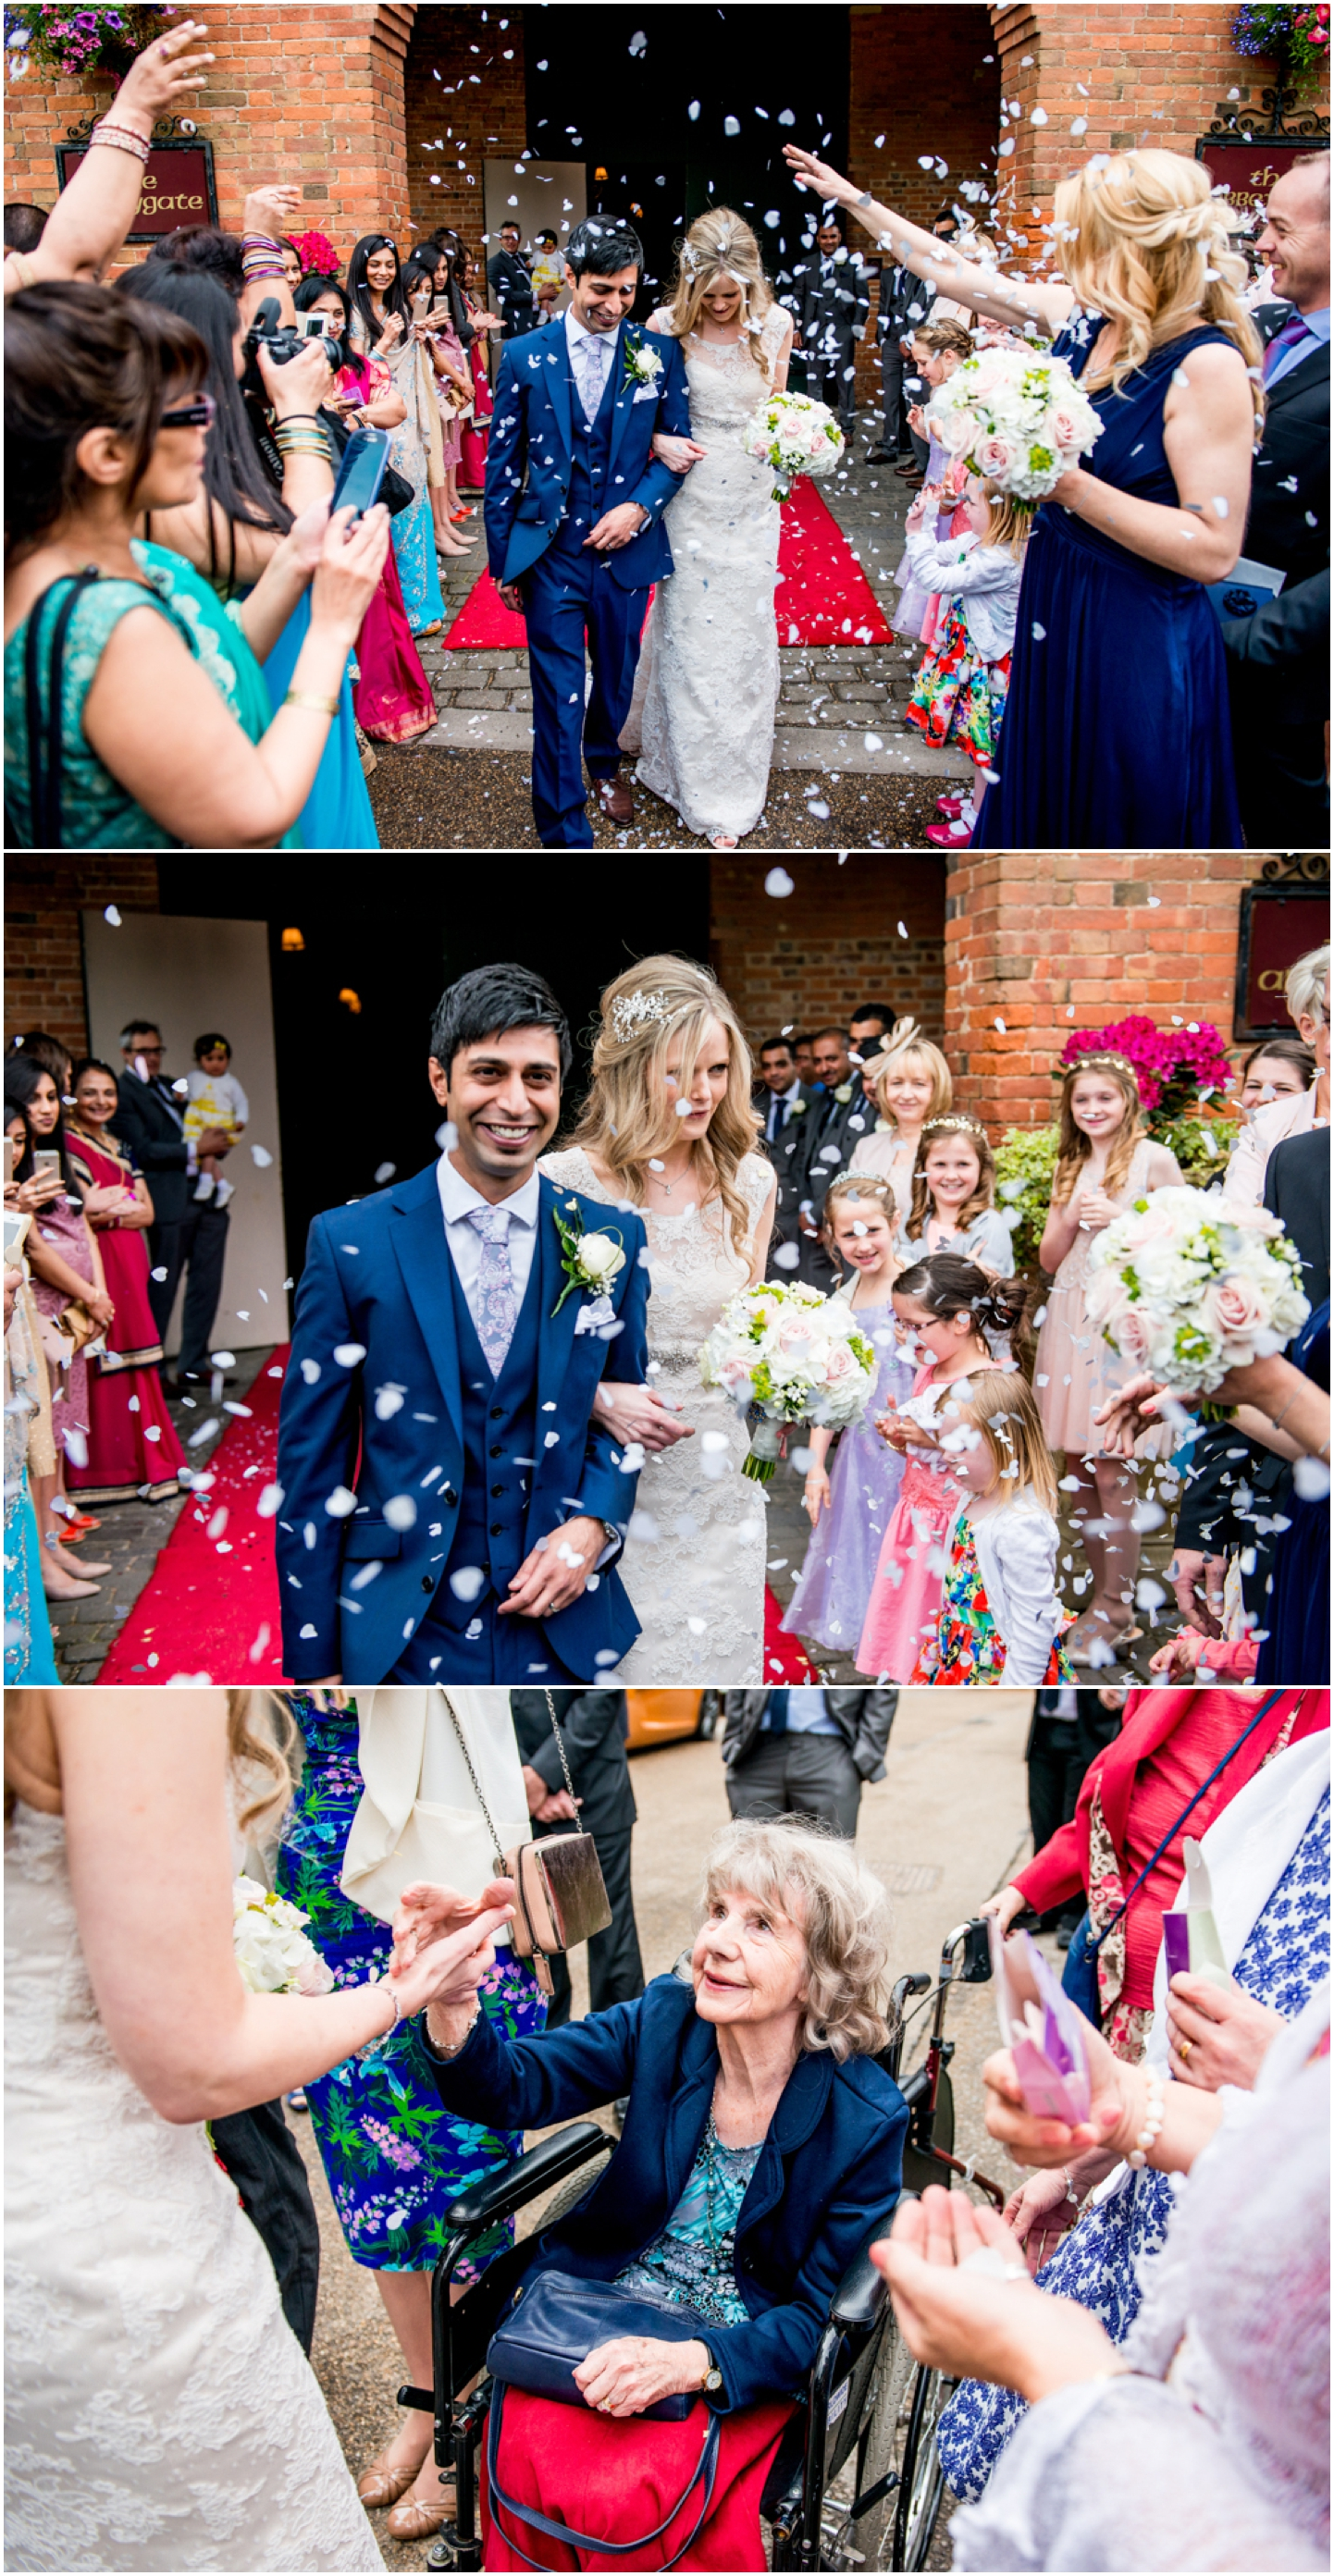 Katie and Pritesh at Coombe Abbey Wedding Venue, beautiful Civil and Hindu ceremony with ivory lace dress and sari by Lisa carpenter Photography, West Midlands and Birmingham based photographer